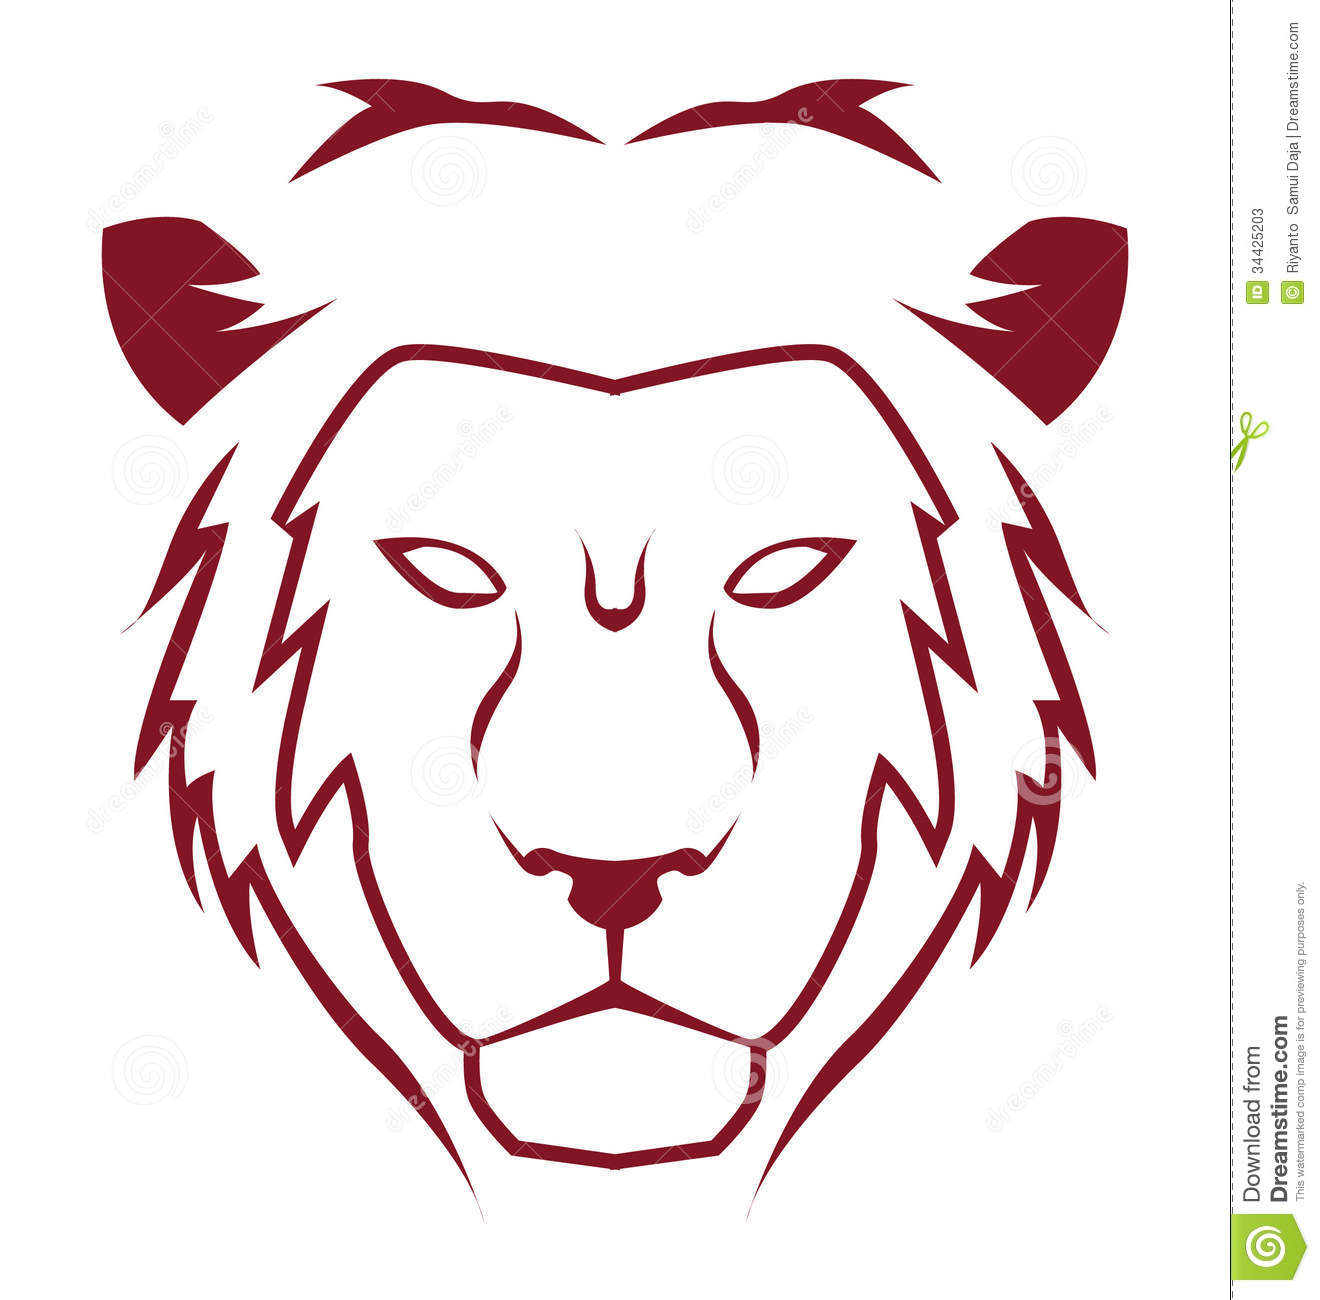 Lion Emblem Stock Photos - Image: 34425203